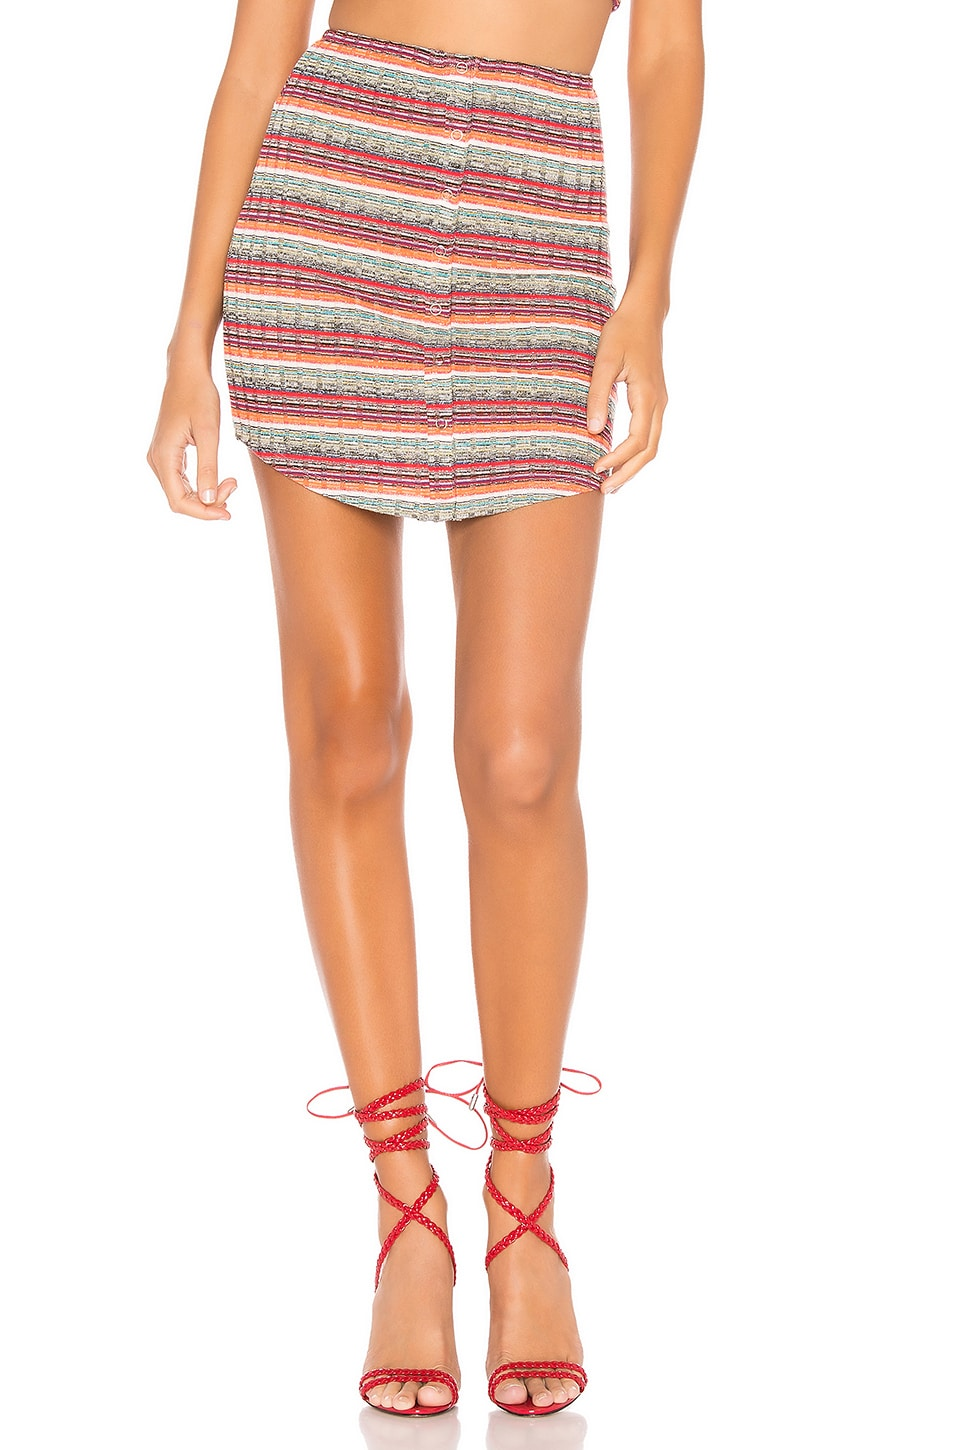 Privacy Please Hope Skirt in Neon Orange Multi